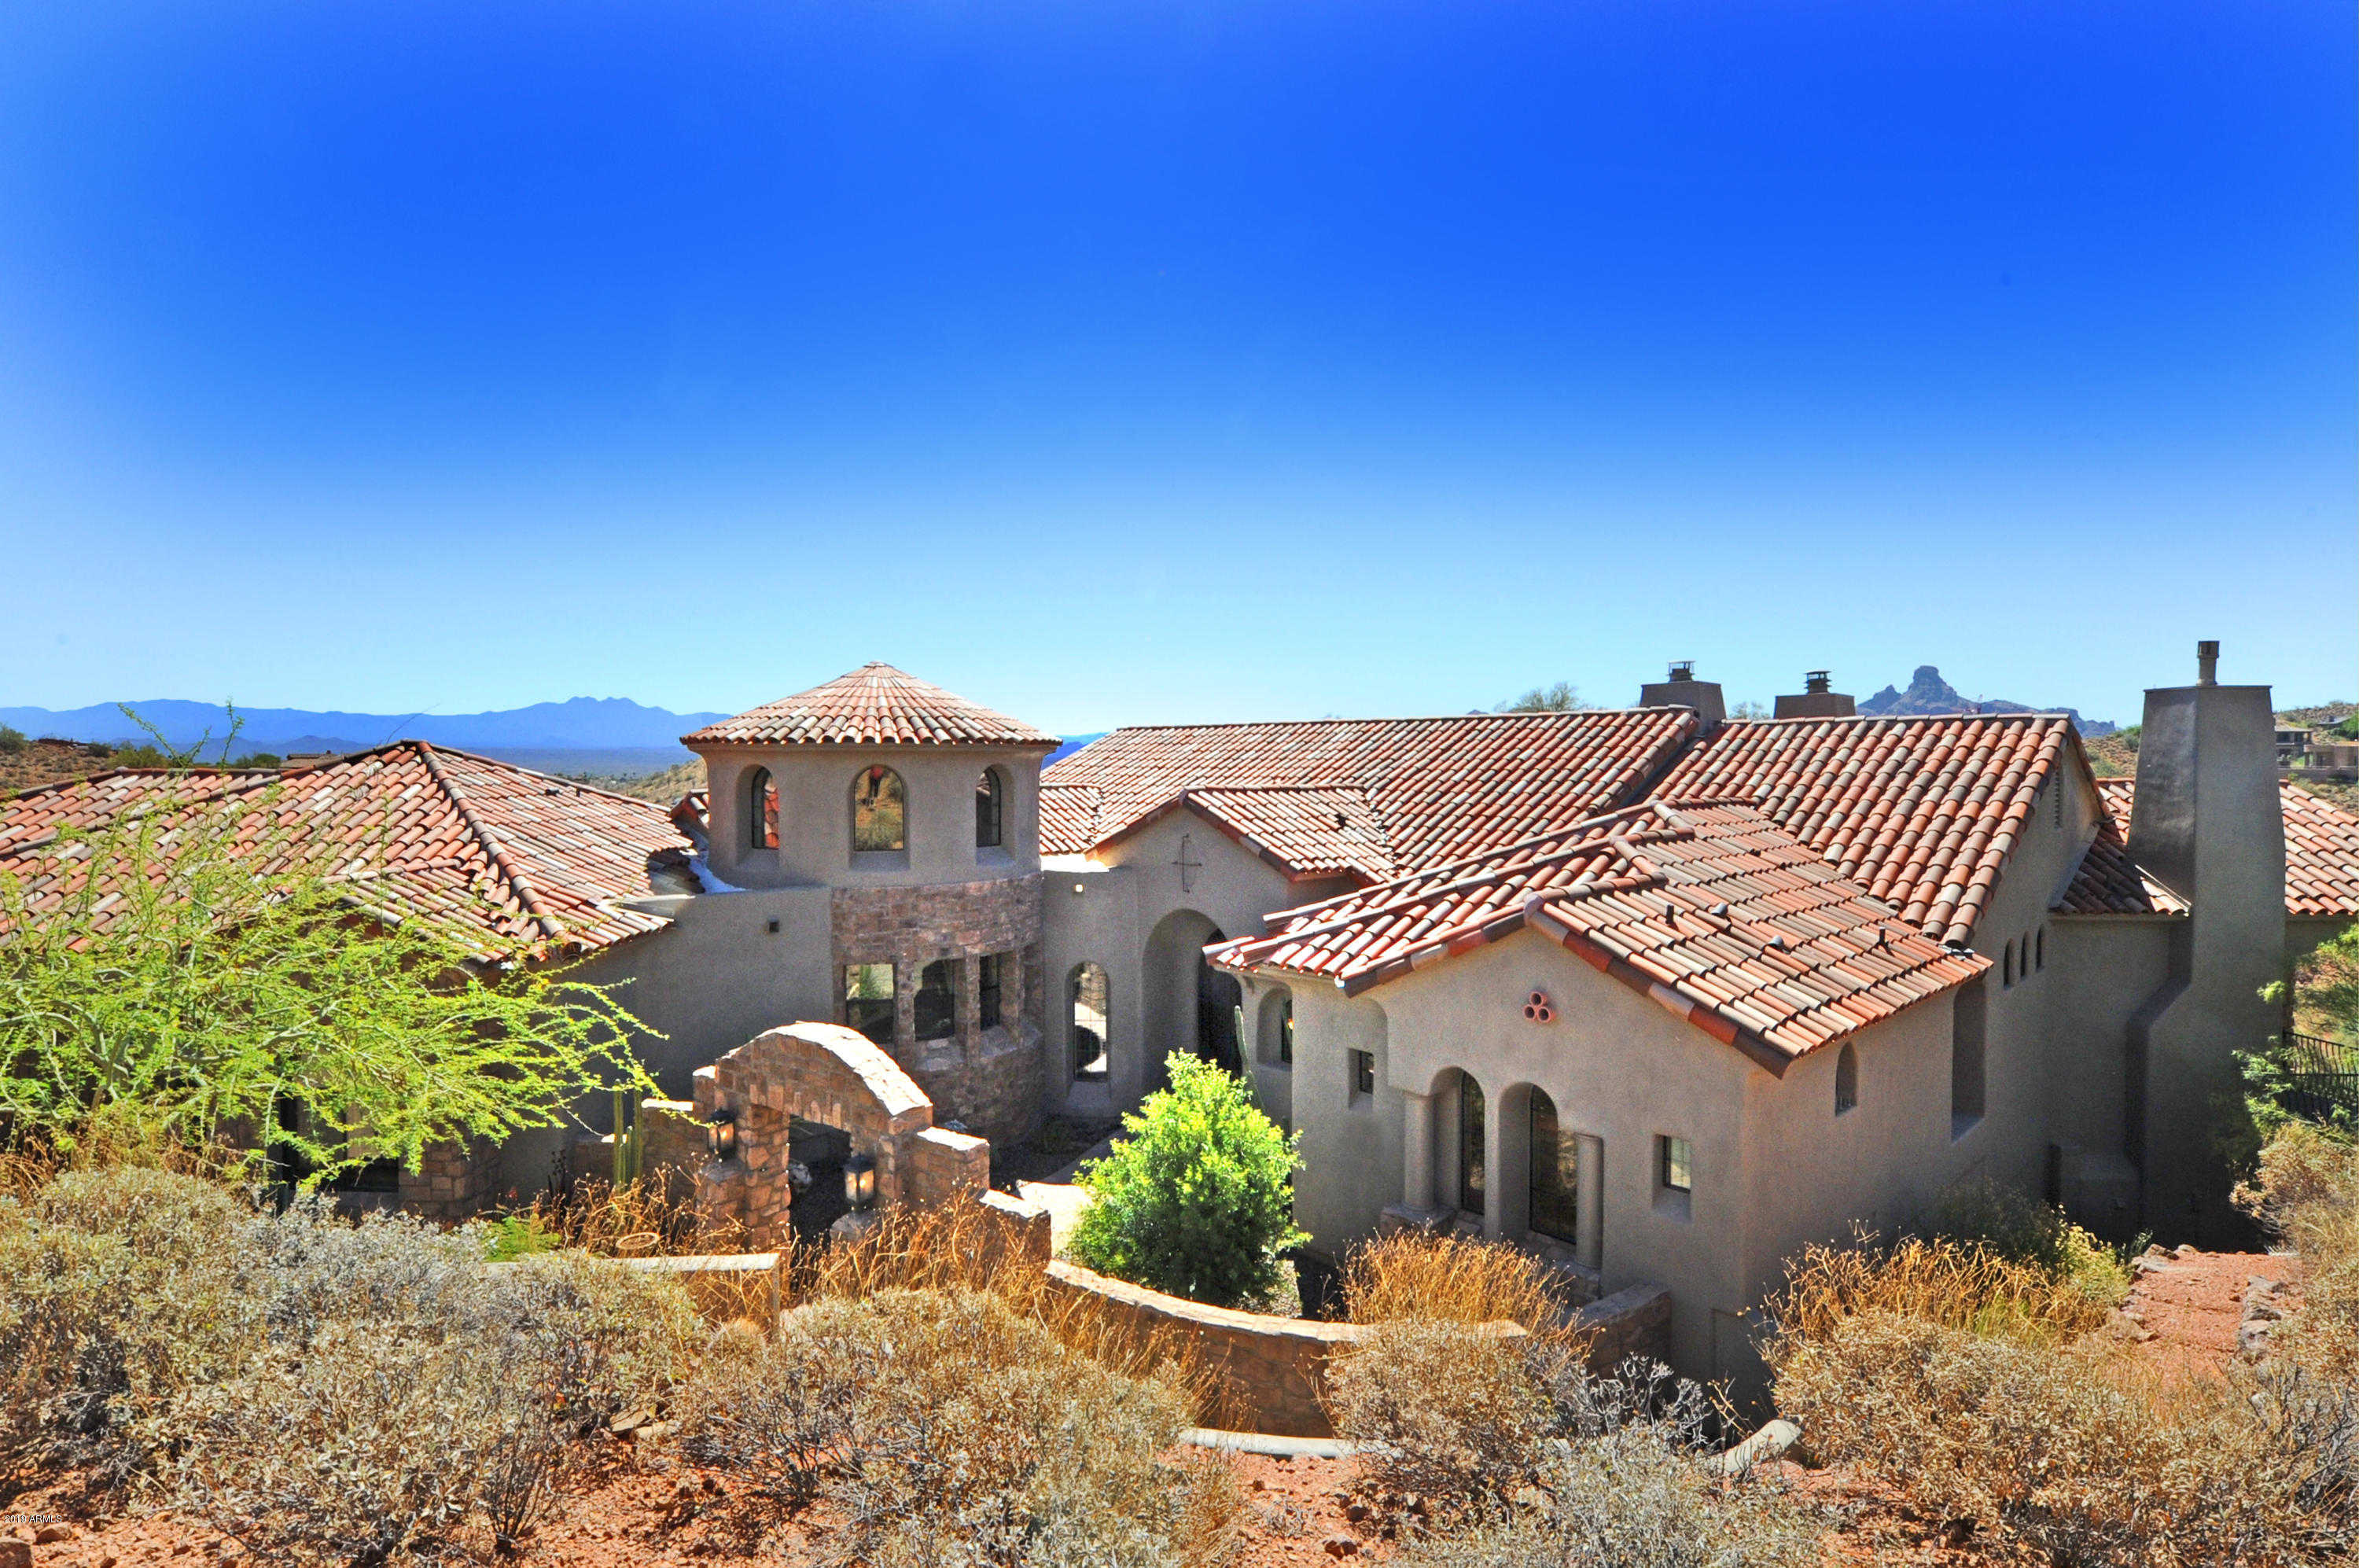 $1,499,000 - 5Br/6Ba - Home for Sale in Firerock Parcel H-1, Fountain Hills